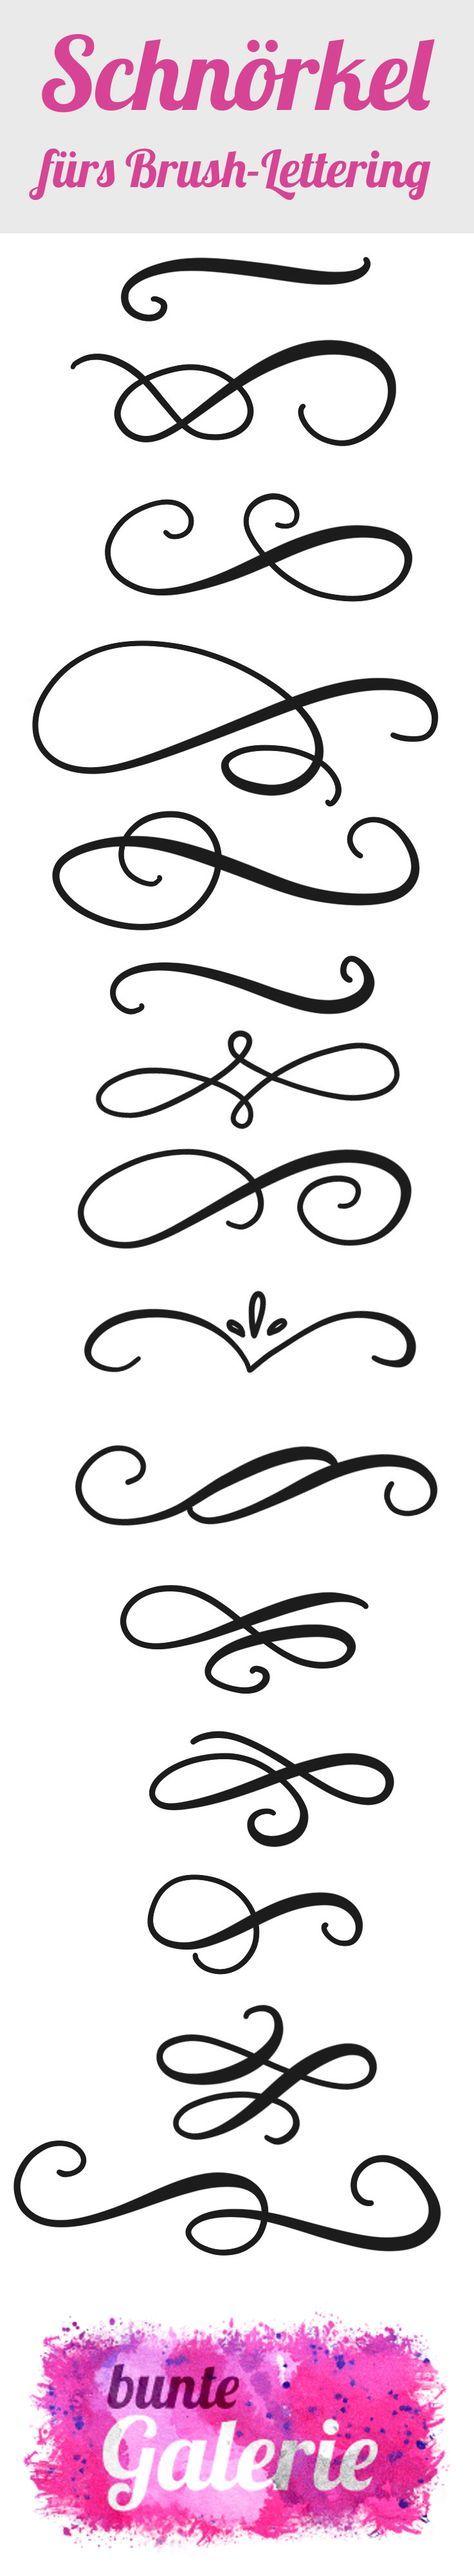 best 25 tattoo banner ideas on pinterest banner drawing small drawings and leaf font. Black Bedroom Furniture Sets. Home Design Ideas